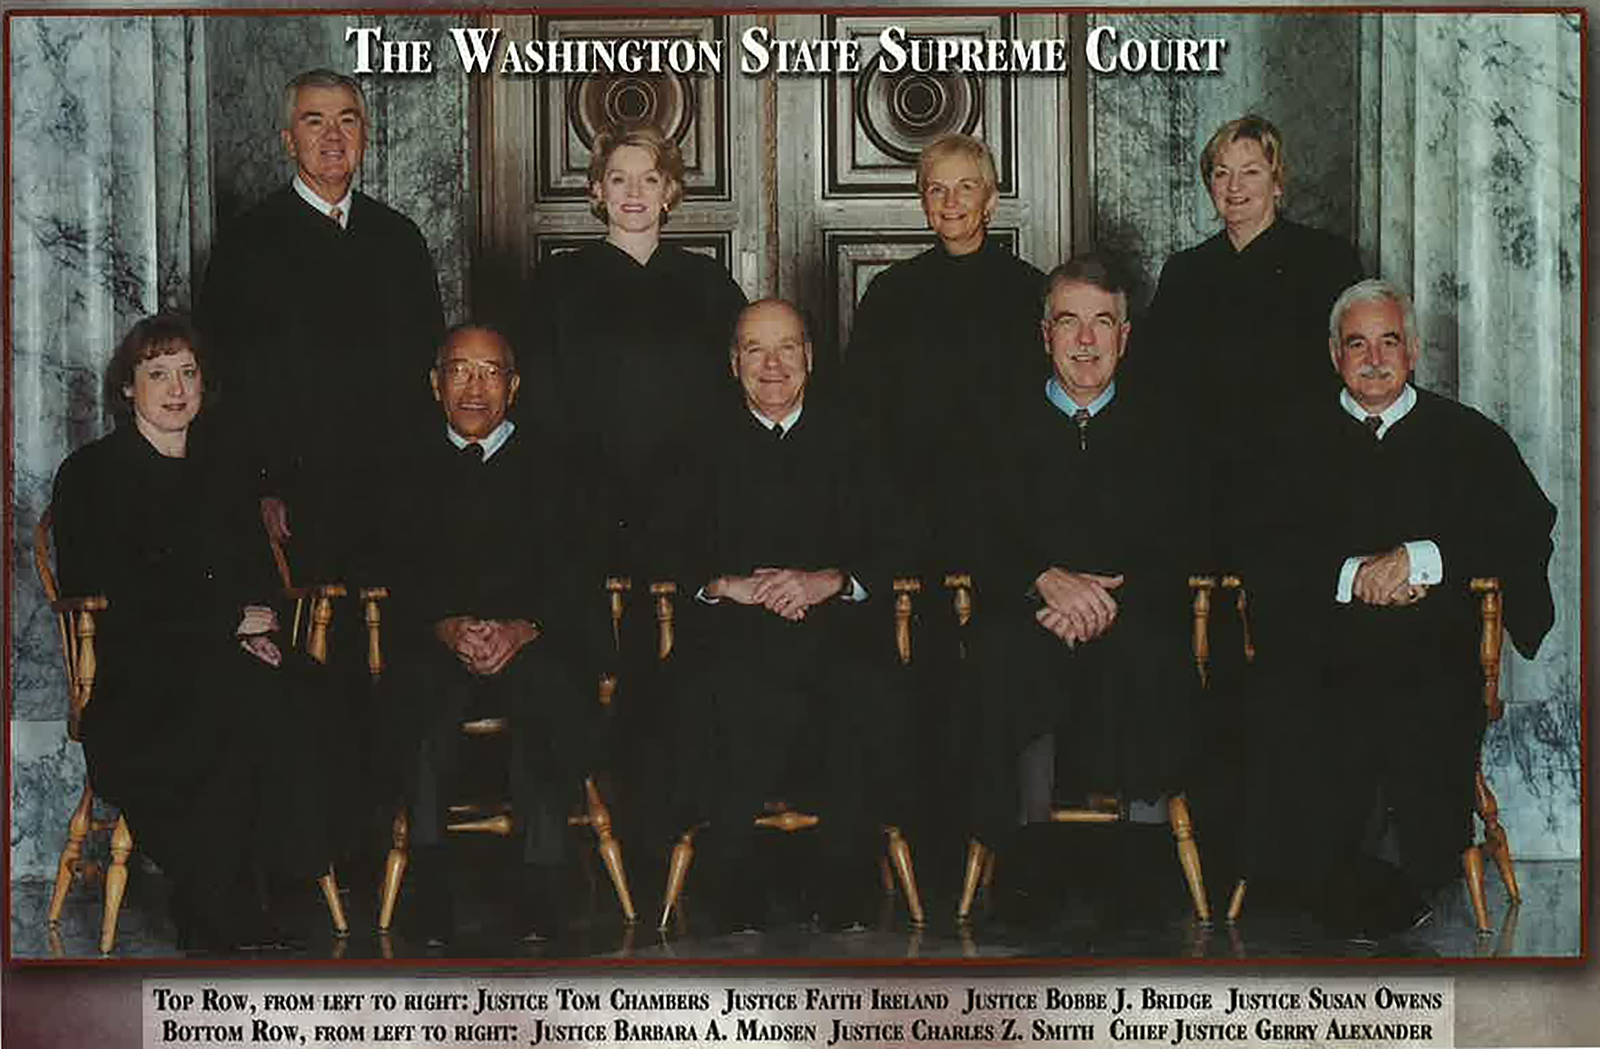 Justice Bridge and the other members of the Washington State Supreme Court, 2002.